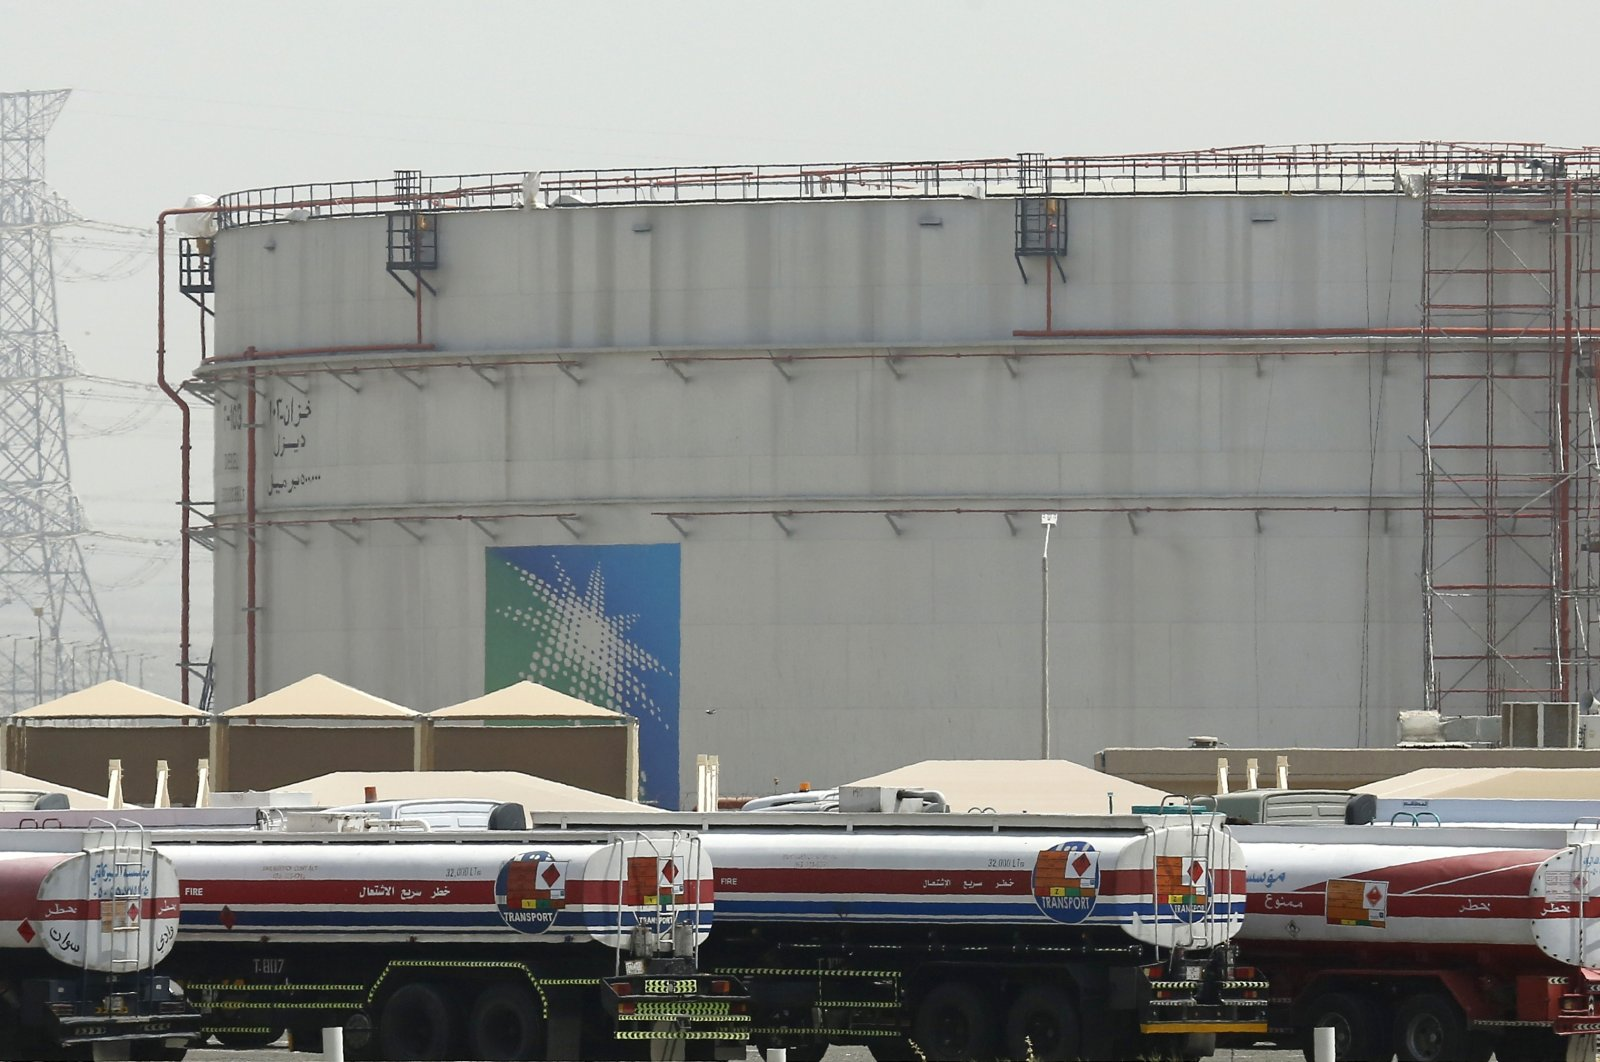 Fuel trucks line up in front of storage tanks at the North Jiddah bulk plant, an Aramco oil facility, in Jeddah, Saudi Arabia, March 21, 2021. (AP Photo)